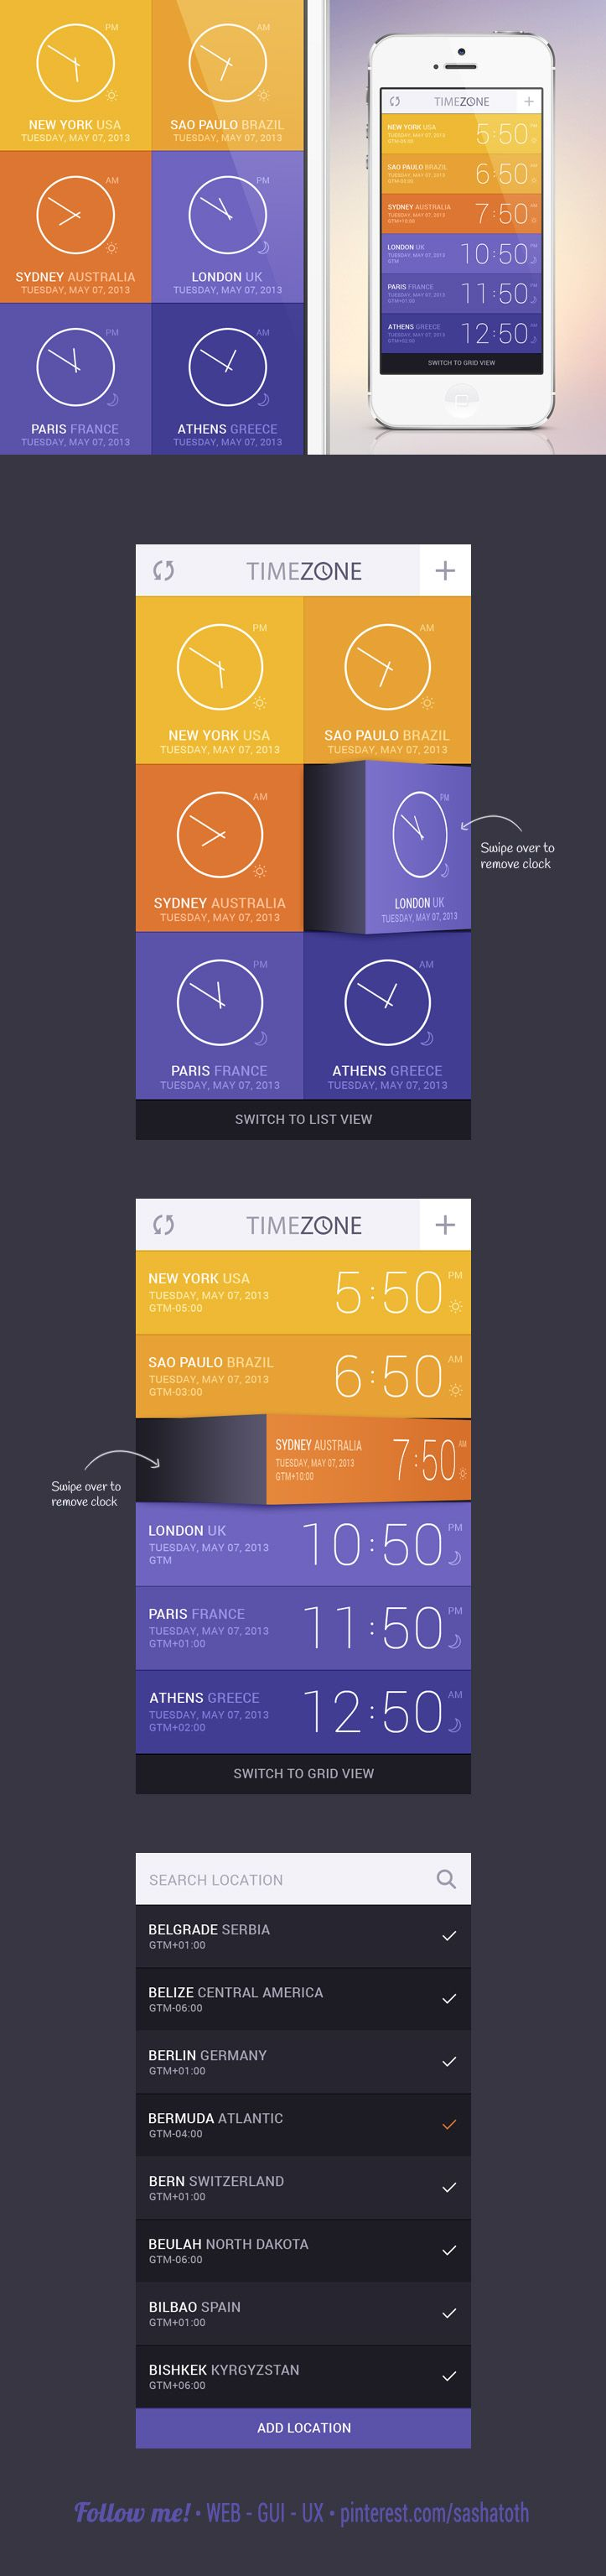 Time Zone App Concept